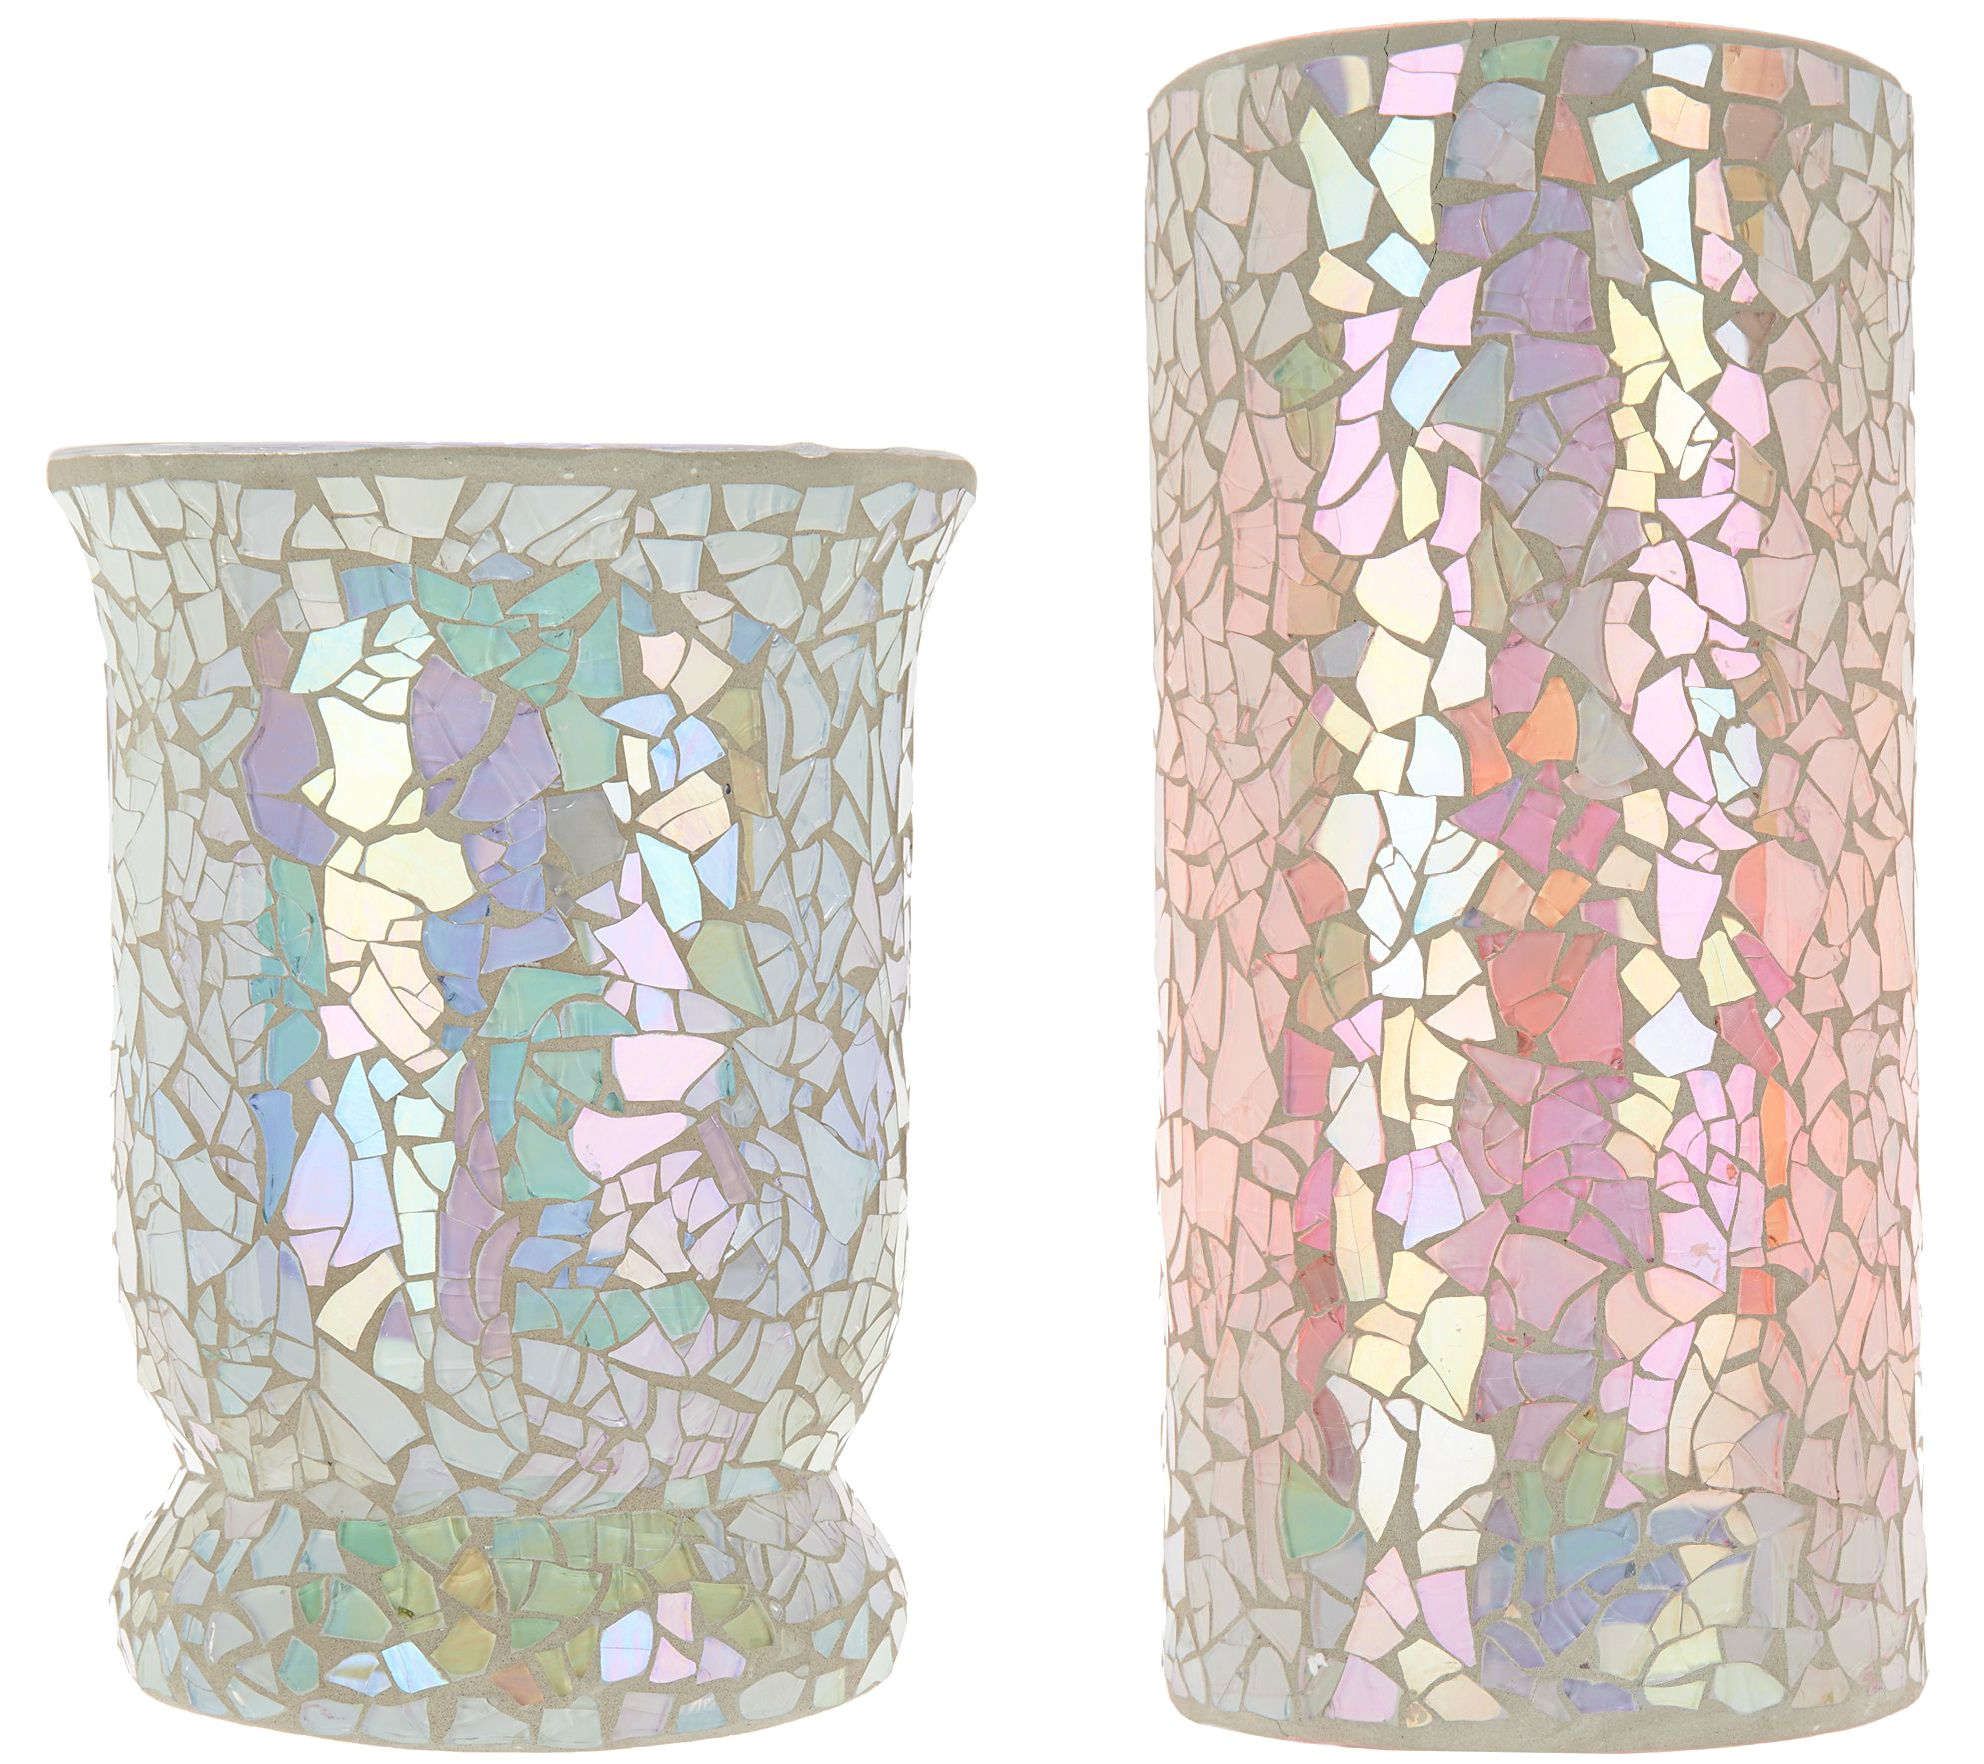 Pastel Mosaic Murricane or Column w/ Multi- Function Light